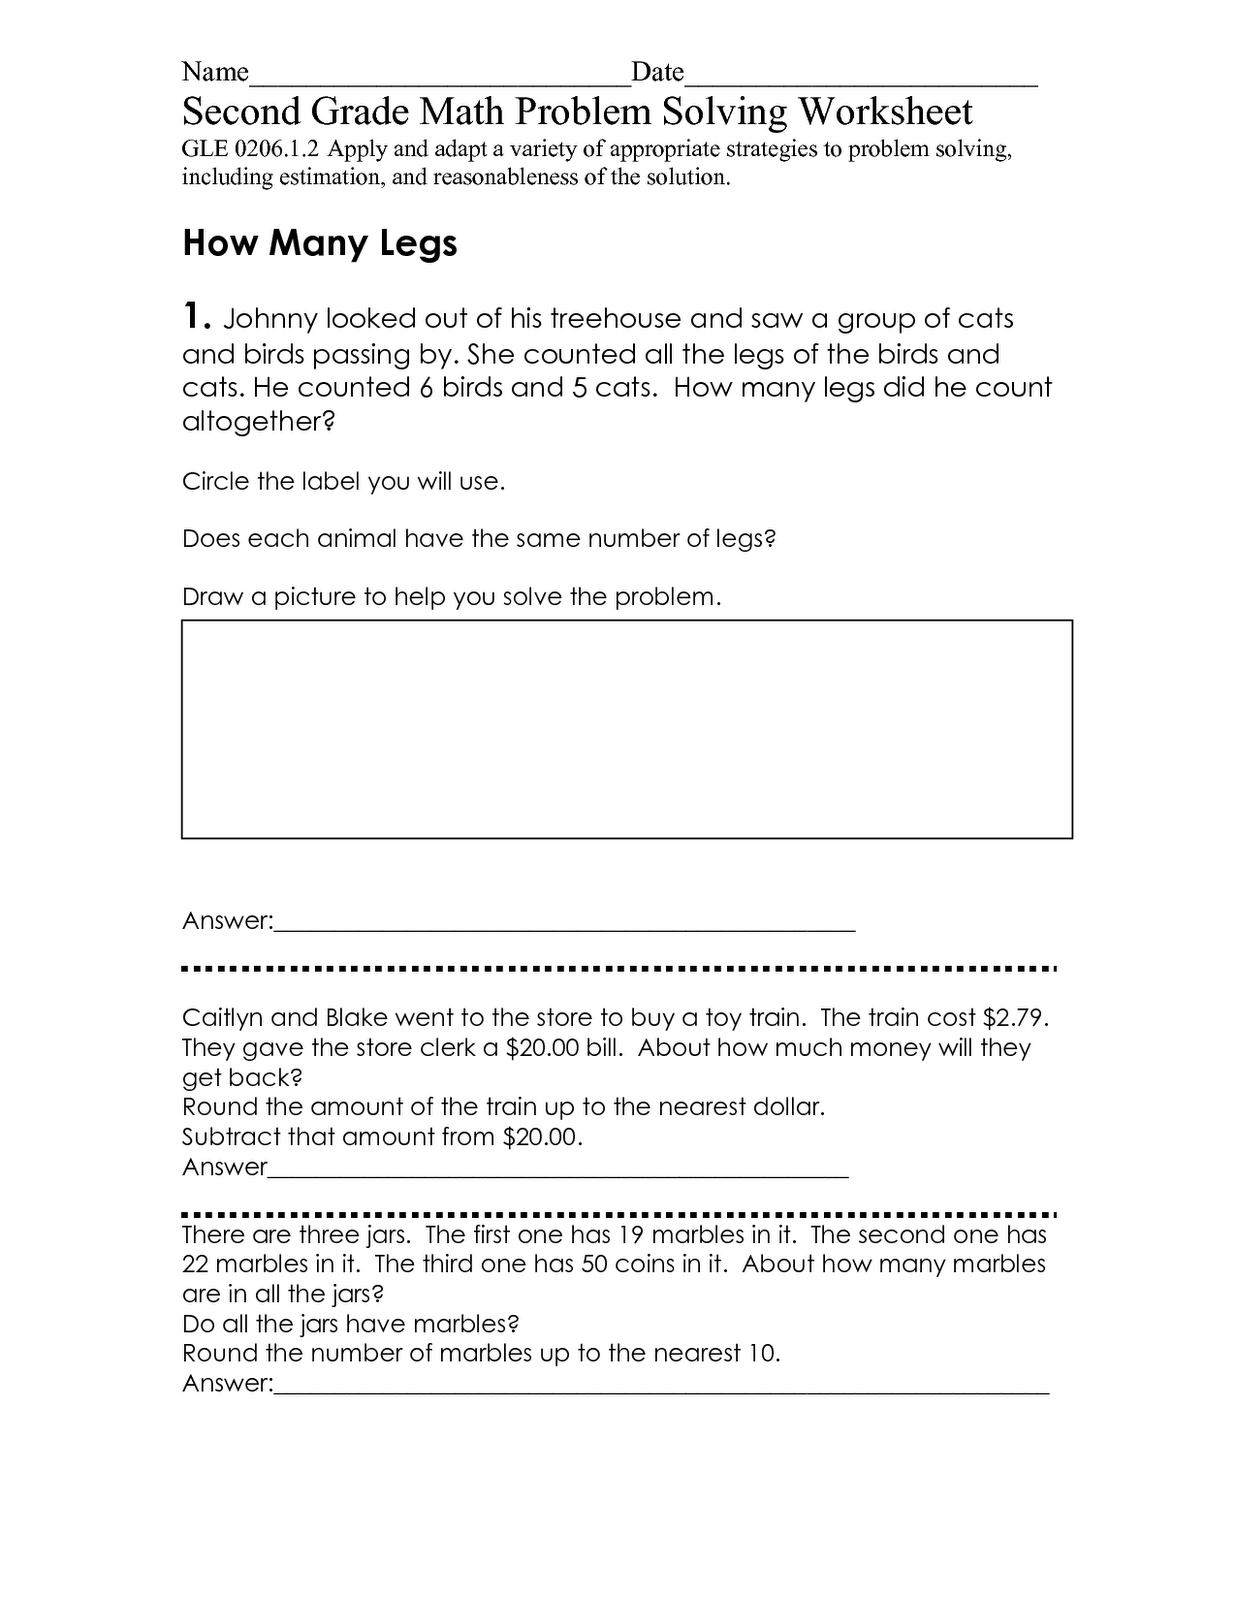 Second Grade Math Problem Solving Yourhelpfulelf – Second Grade Math Problems Worksheet